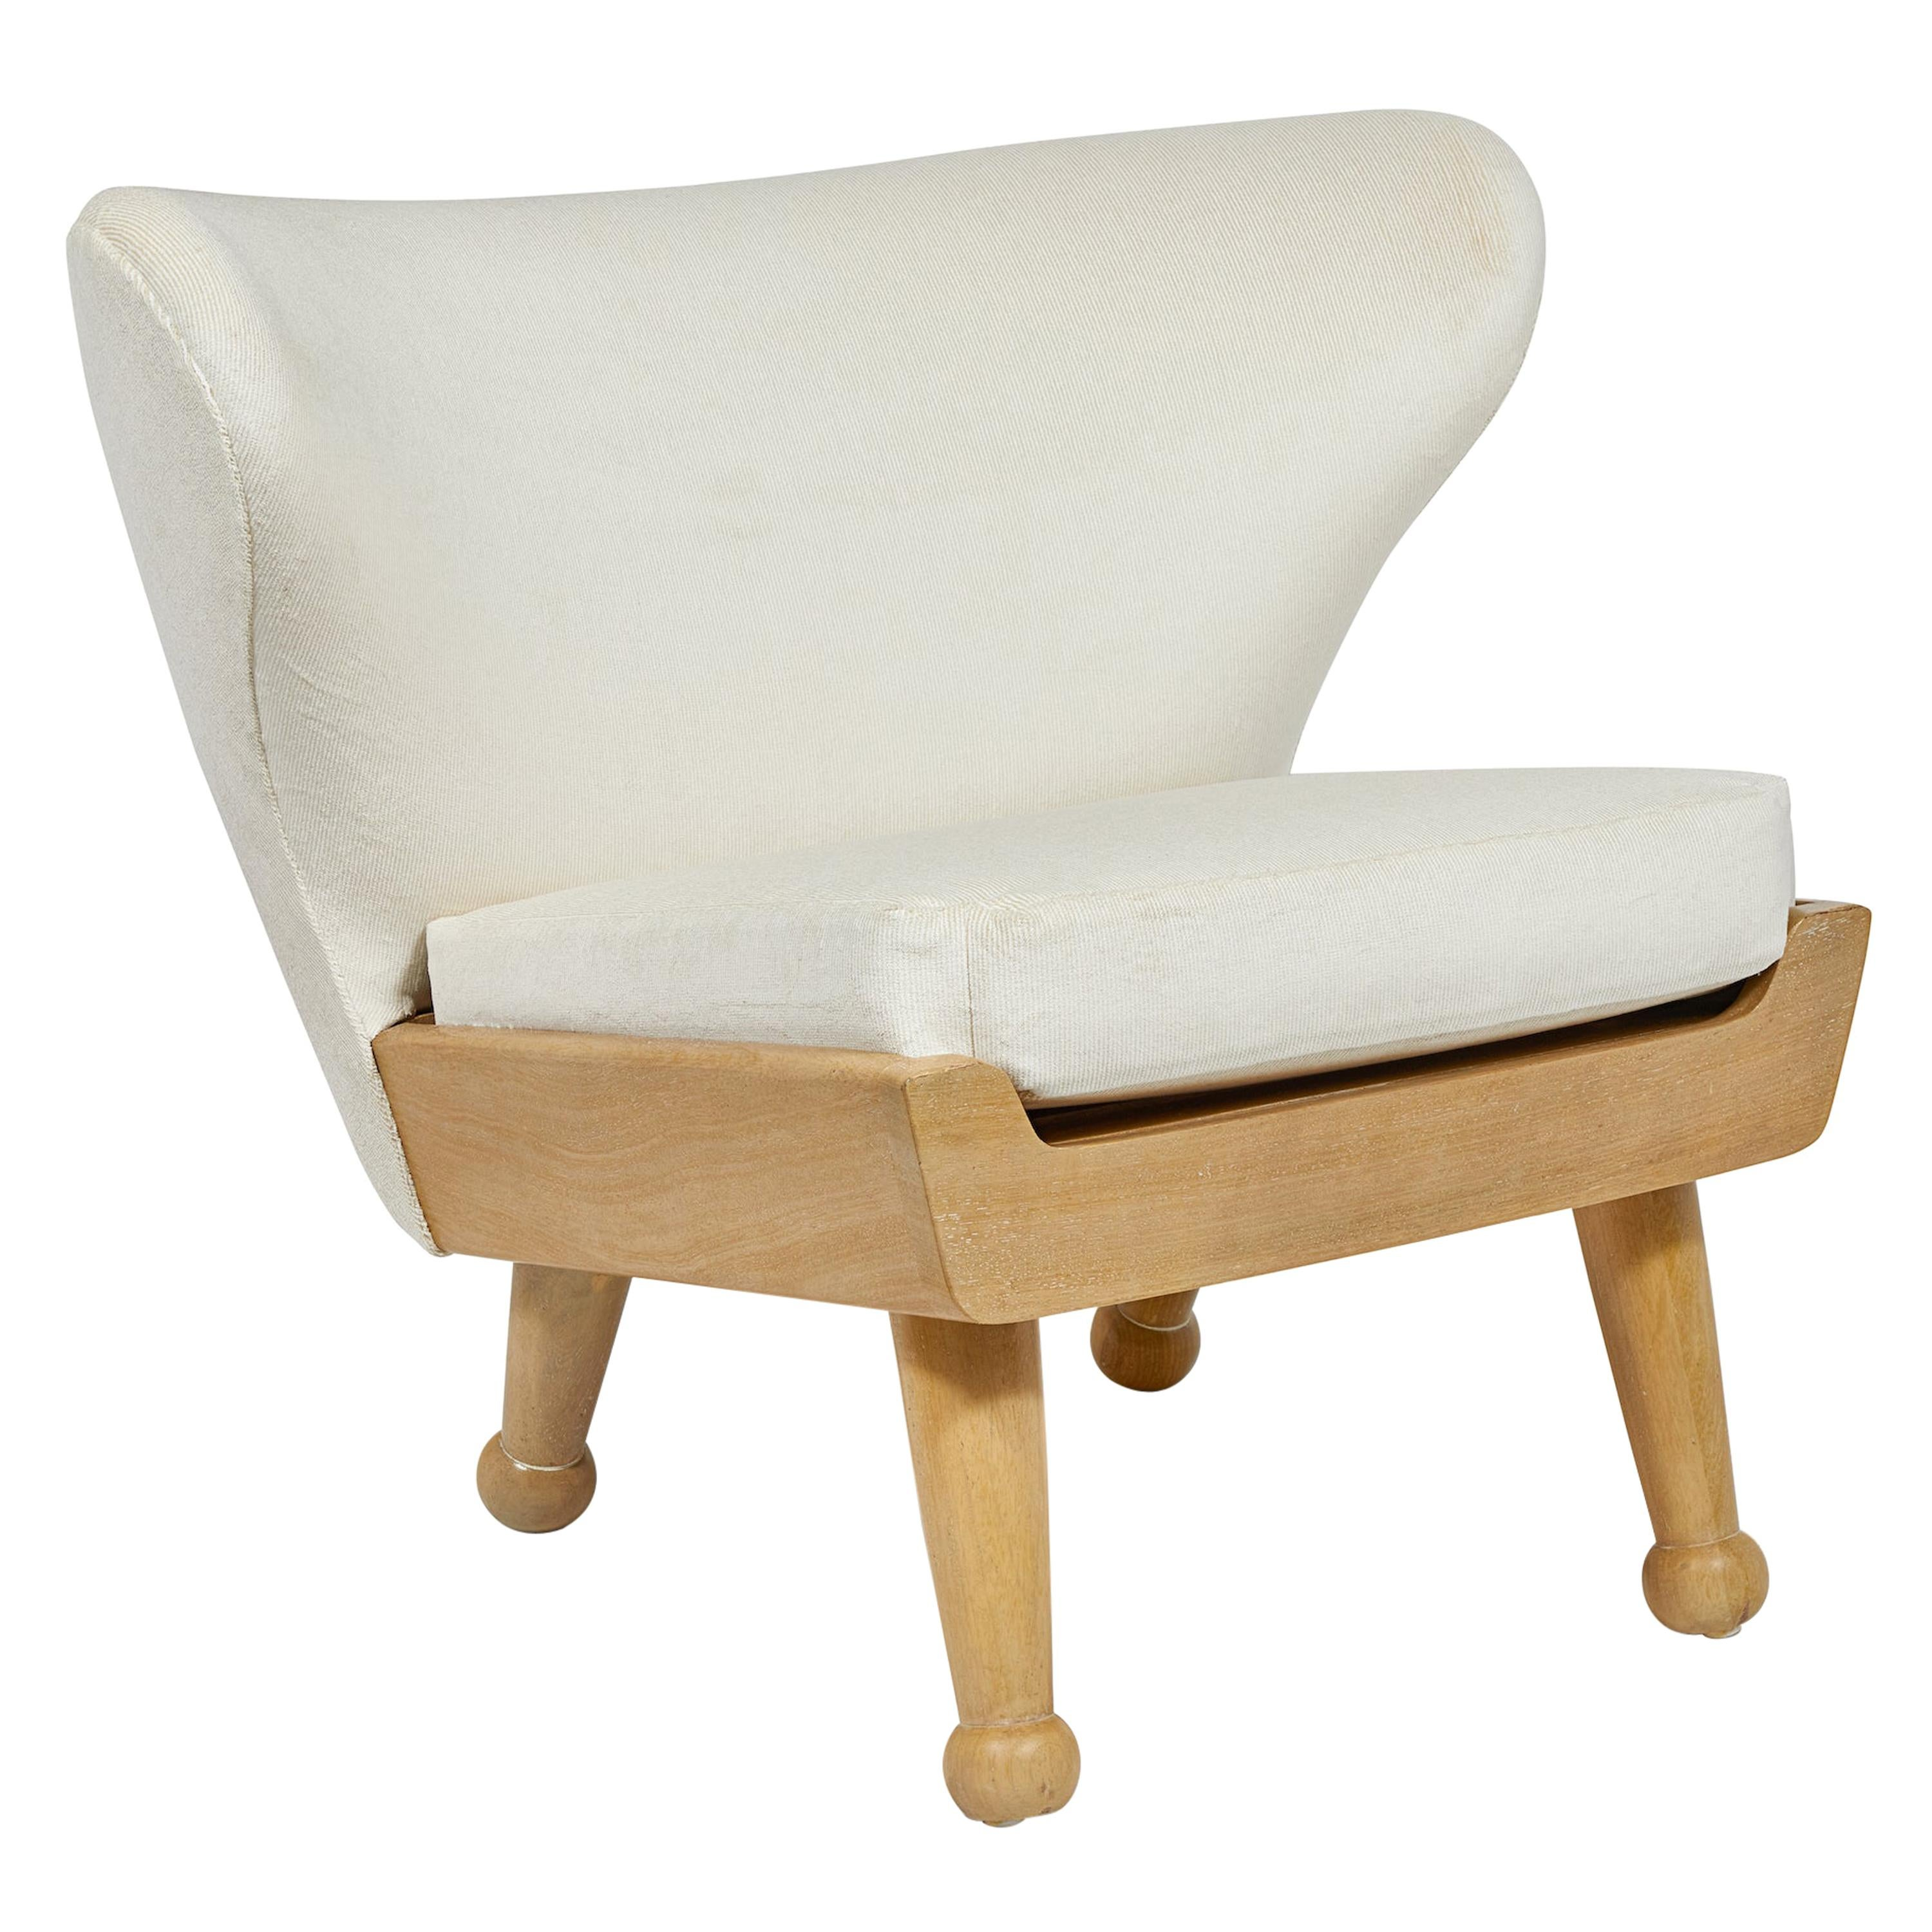 Bleach Teak Outdoor Upholstered Hayworth Lounge Chair by August Abode